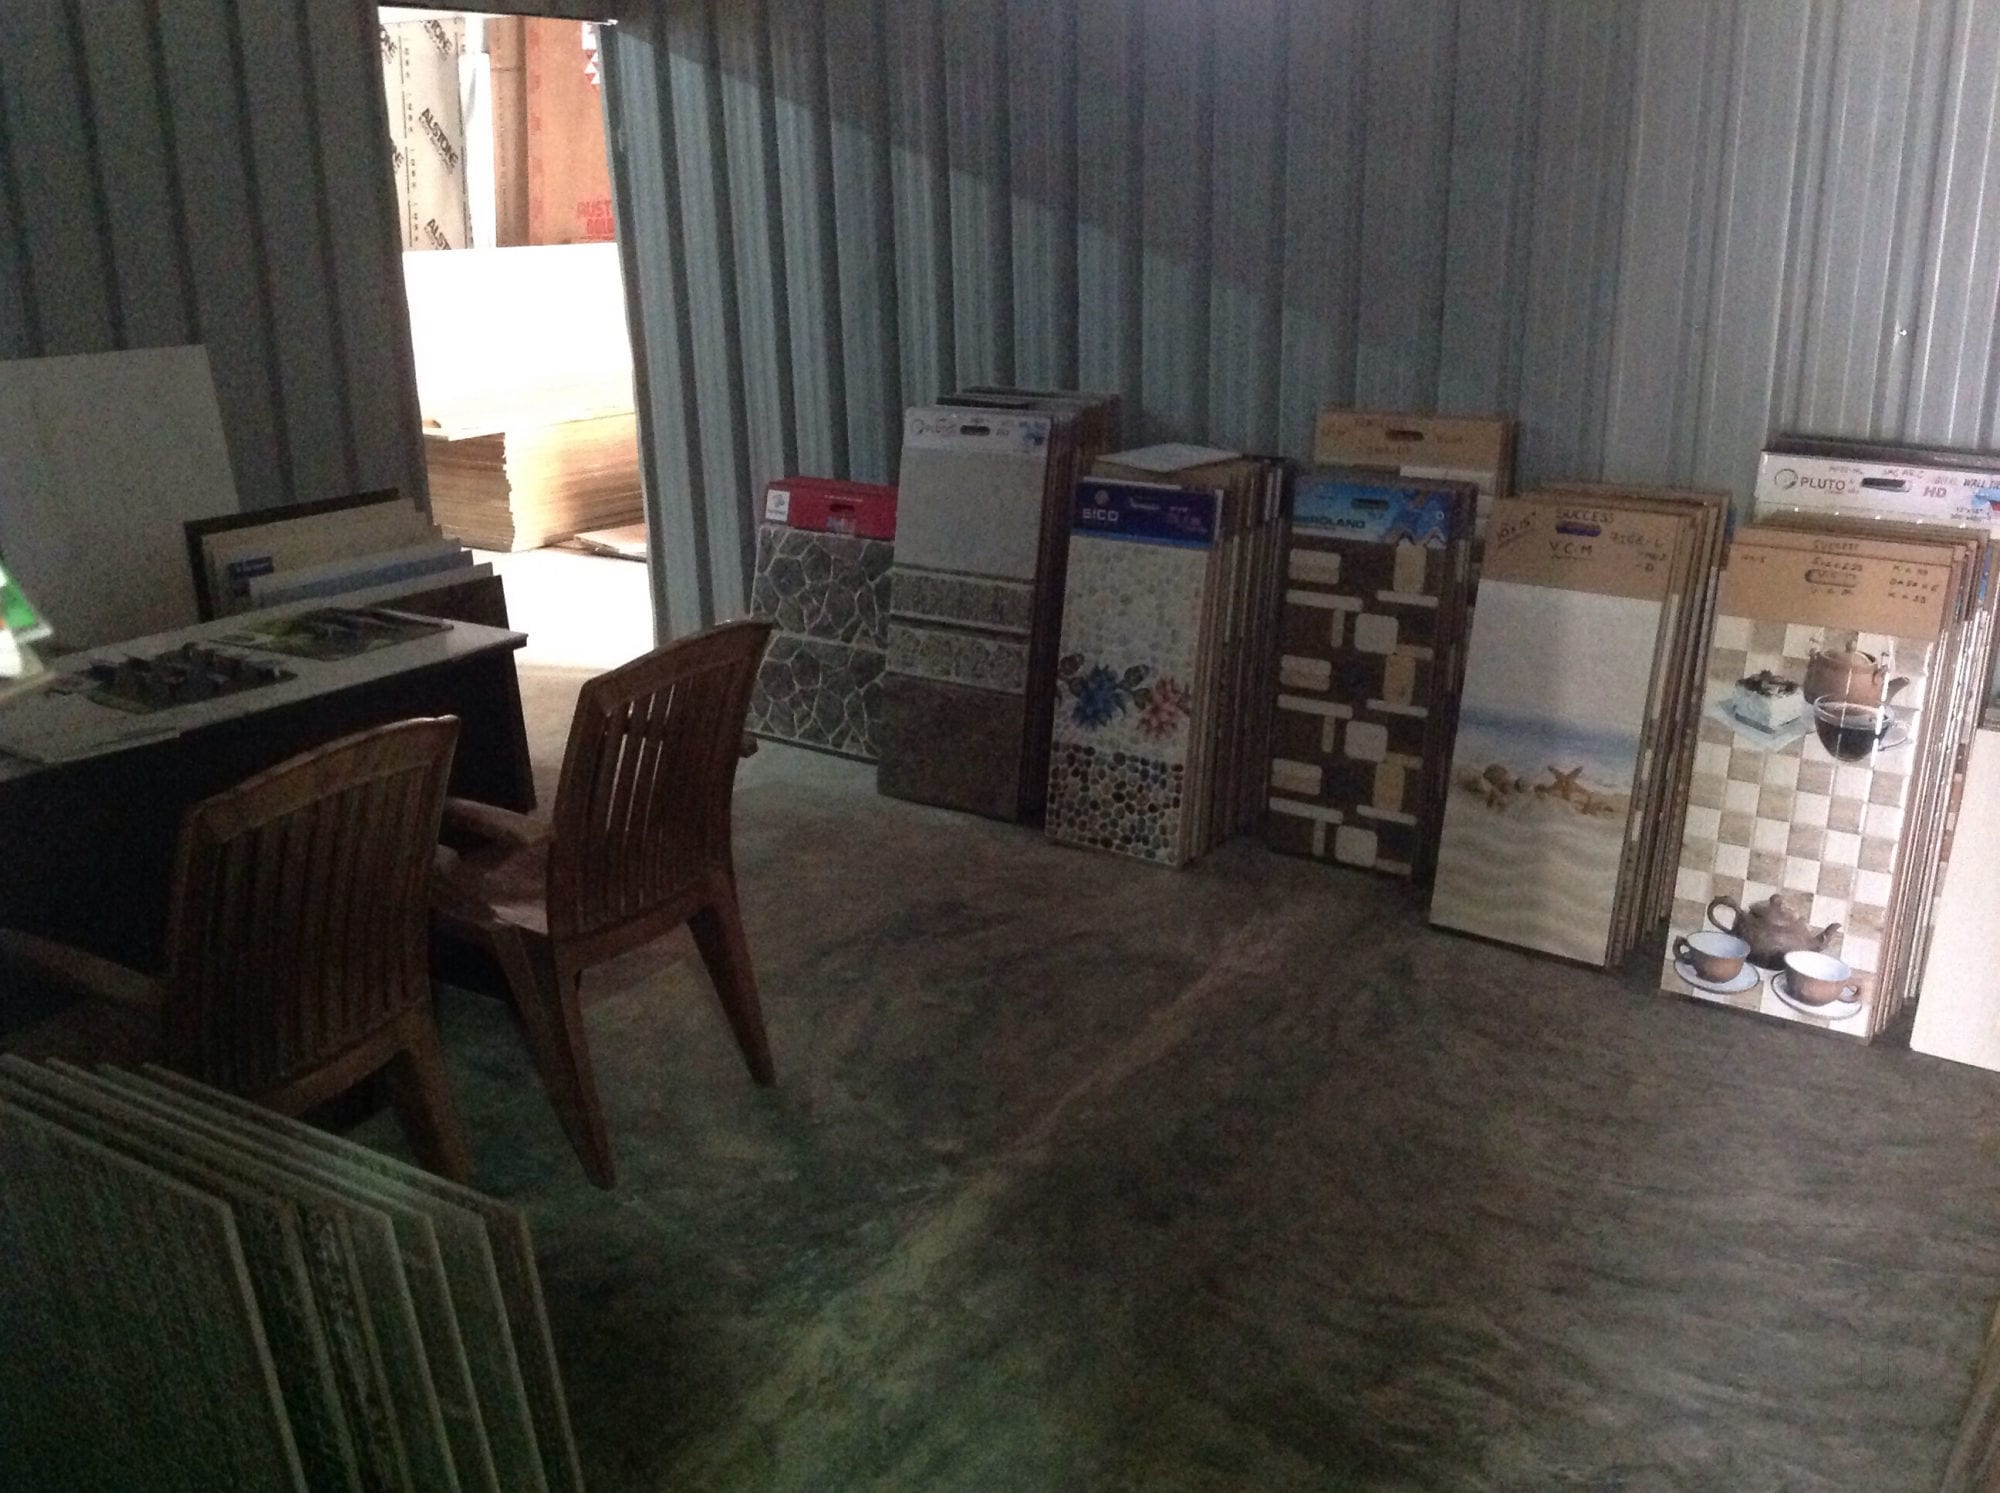 Tile Depot Photos, Kukatpally, Hyderabad- Pictures & Images Gallery ...